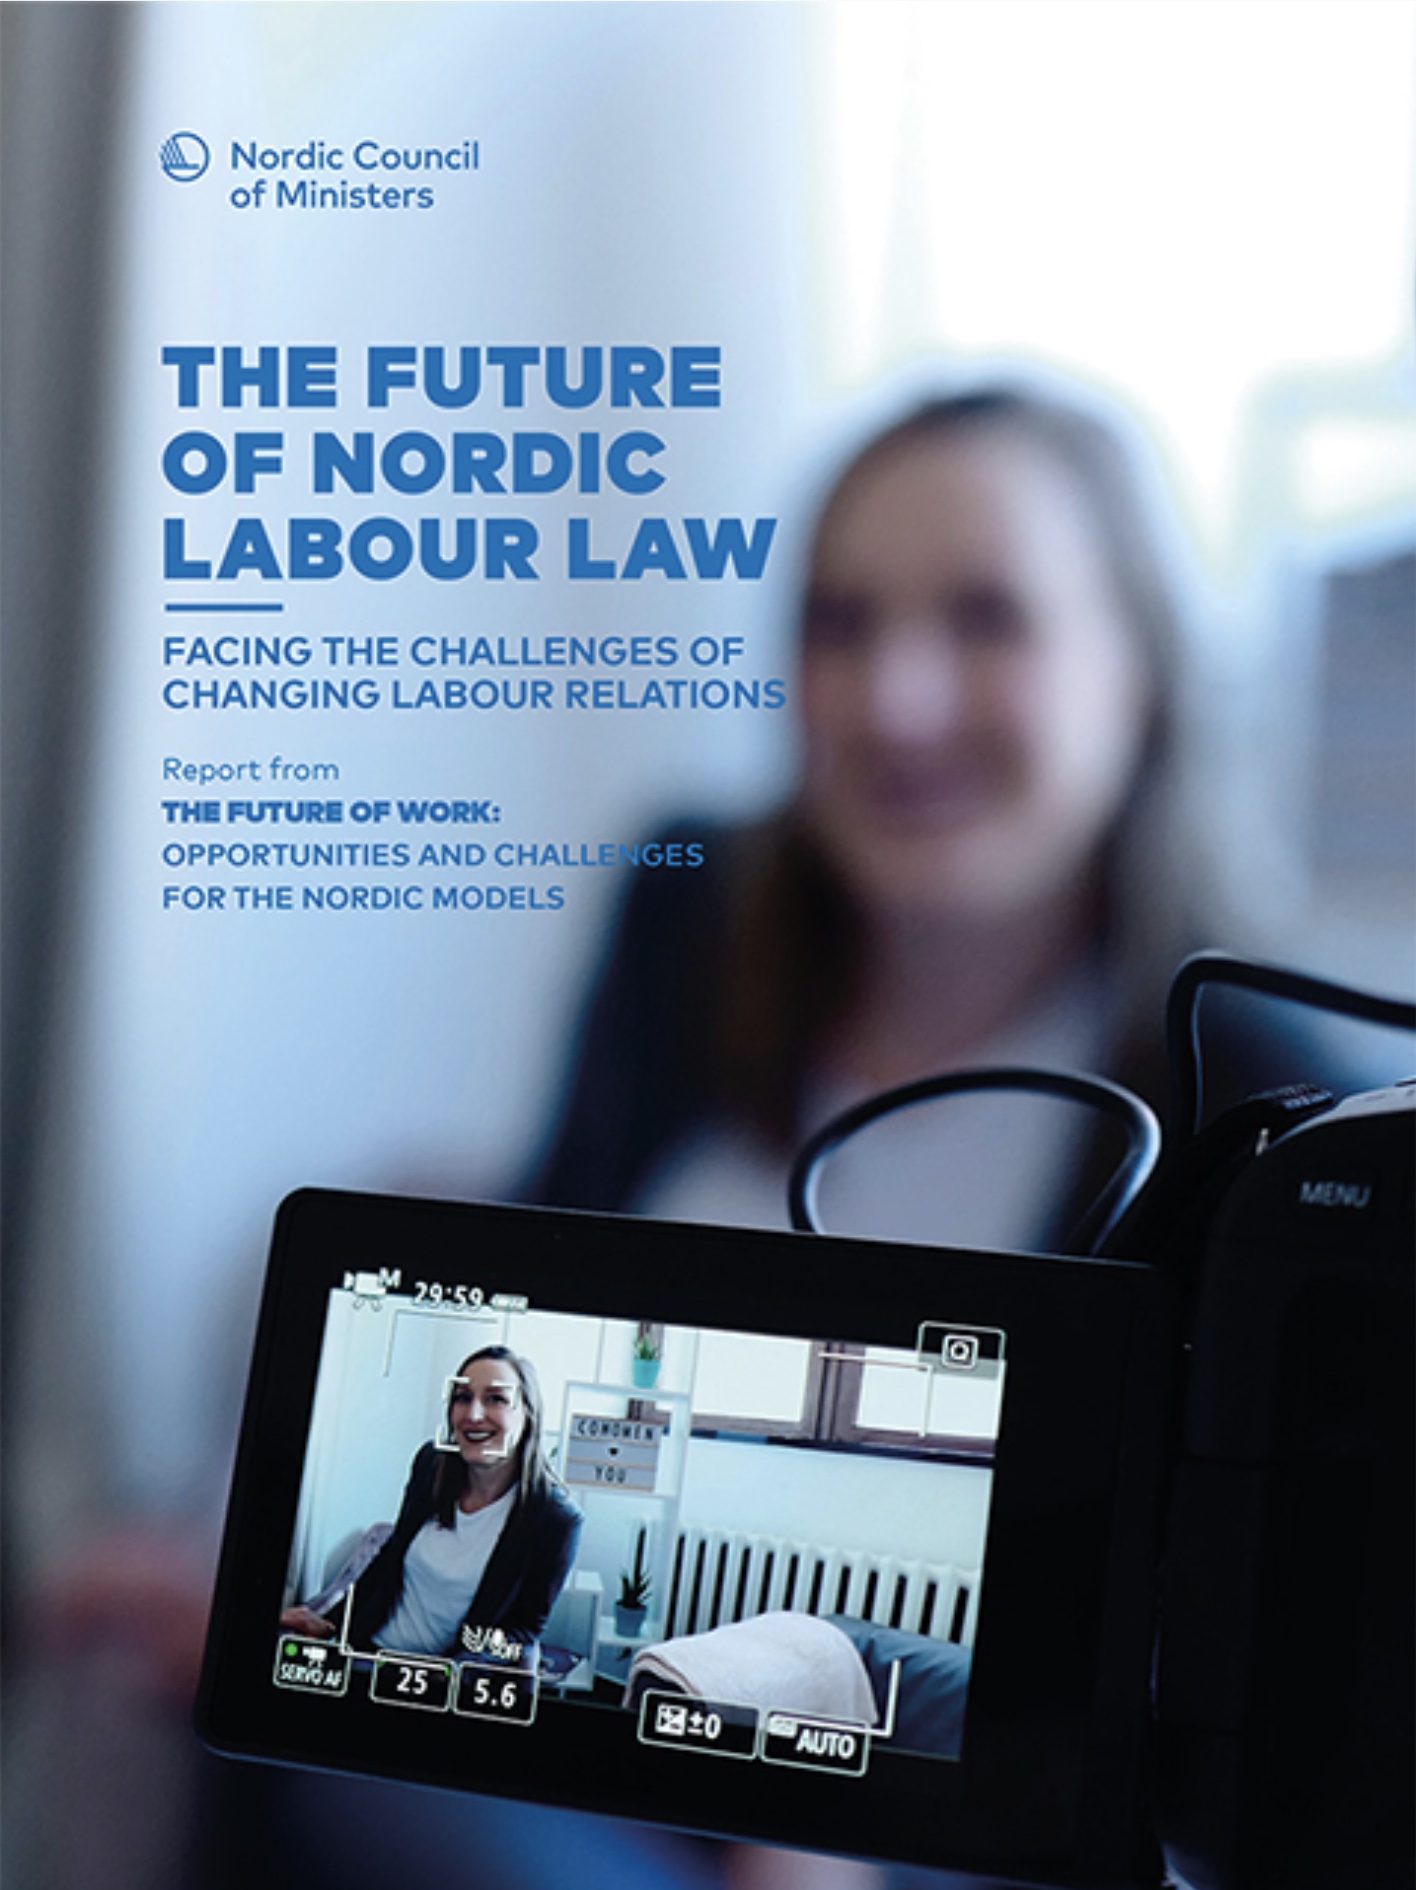 The Future of Nordic Labour Law